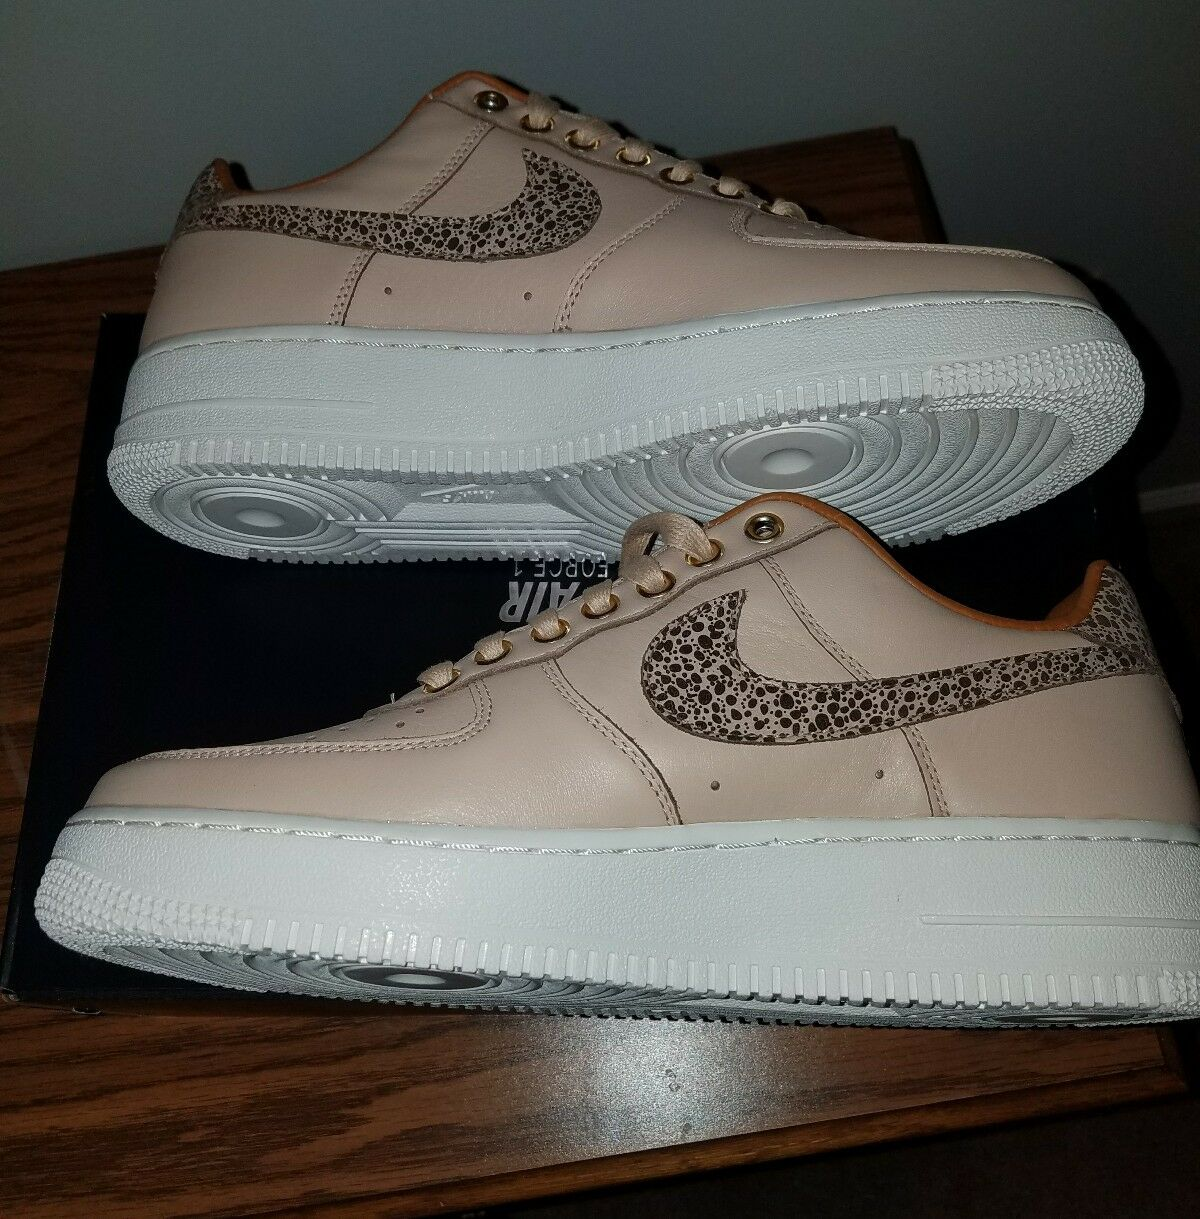 Nike Air Force 1 Vachetta/Tan AR5431 222 mens size 9. 100% AUTHENTIC Comfortable and good-looking